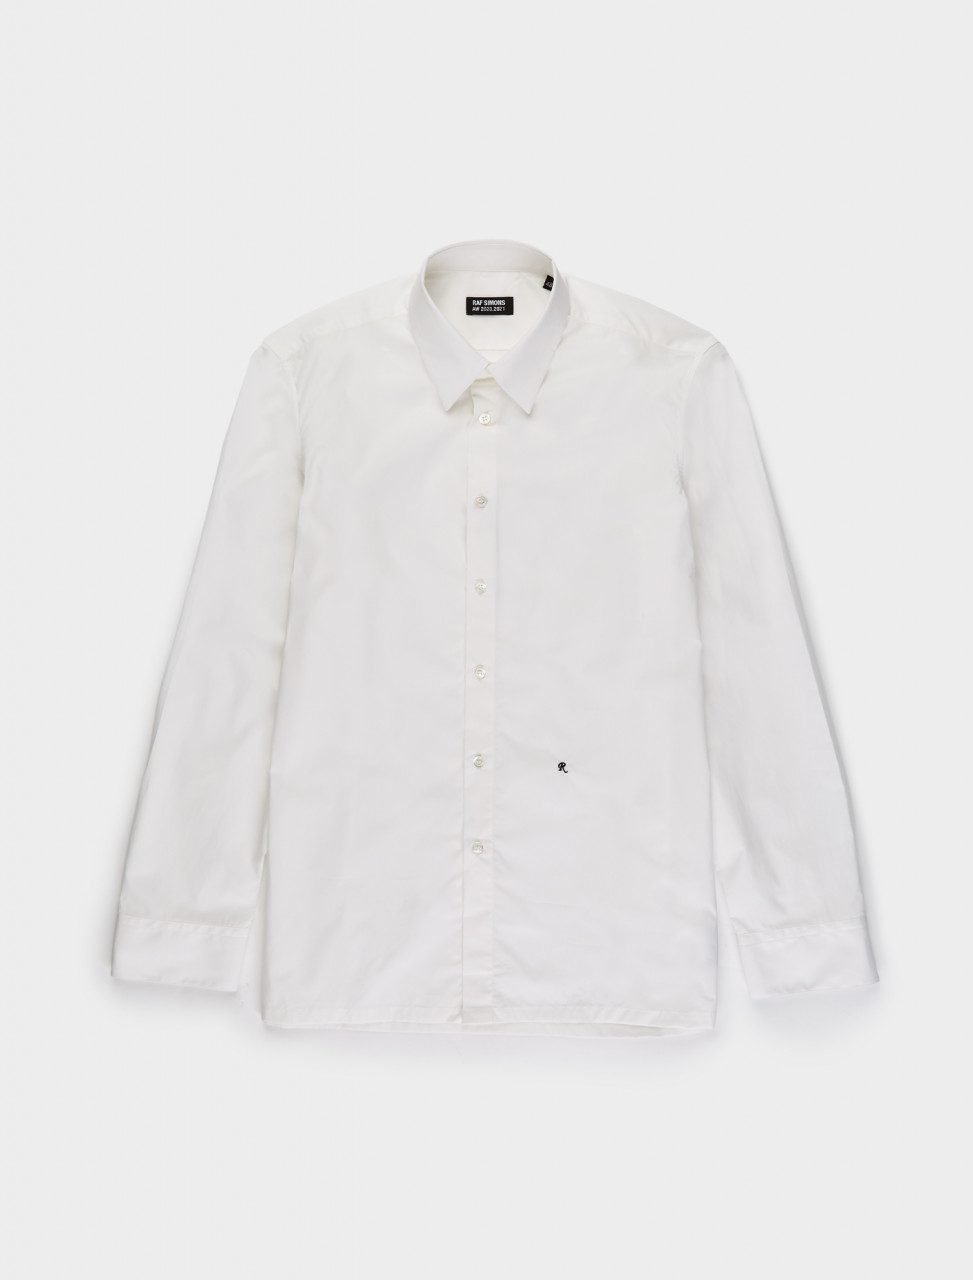 162-202-271-10007-00010 RAF SIMONS STRAIGHT FIT R SHIRT